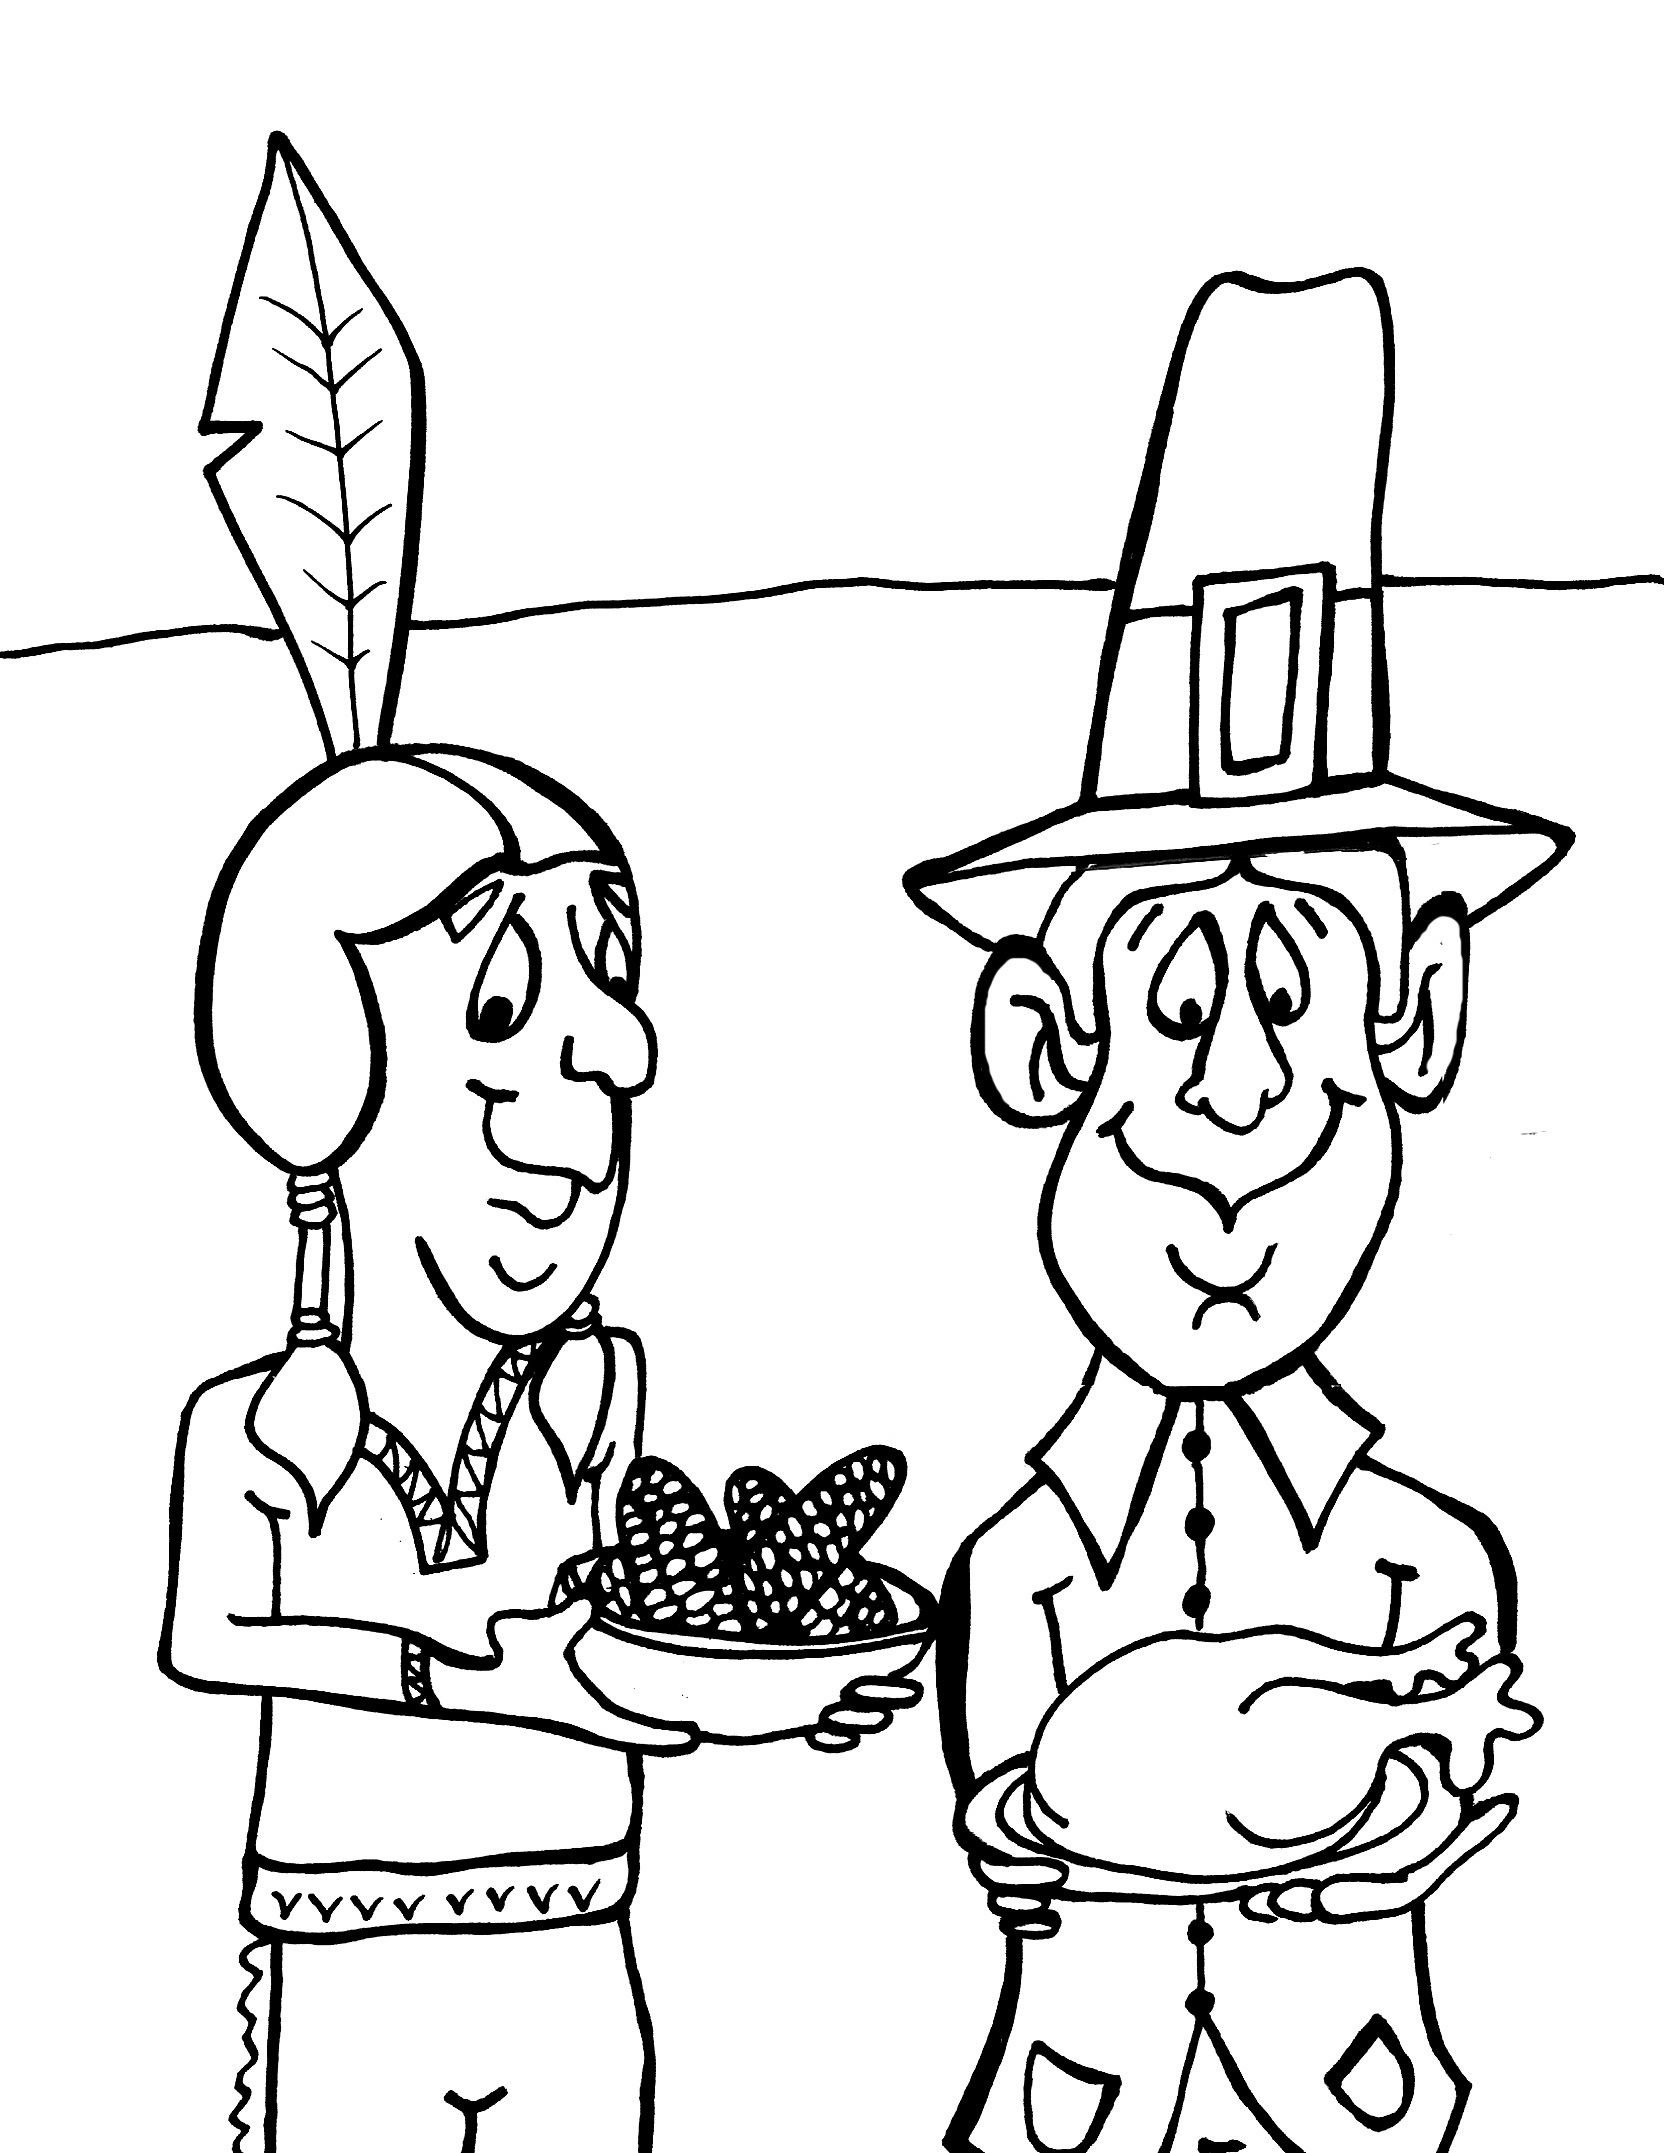 Free printable thanksgiving coloring pages for kids Coloring book for toddlers